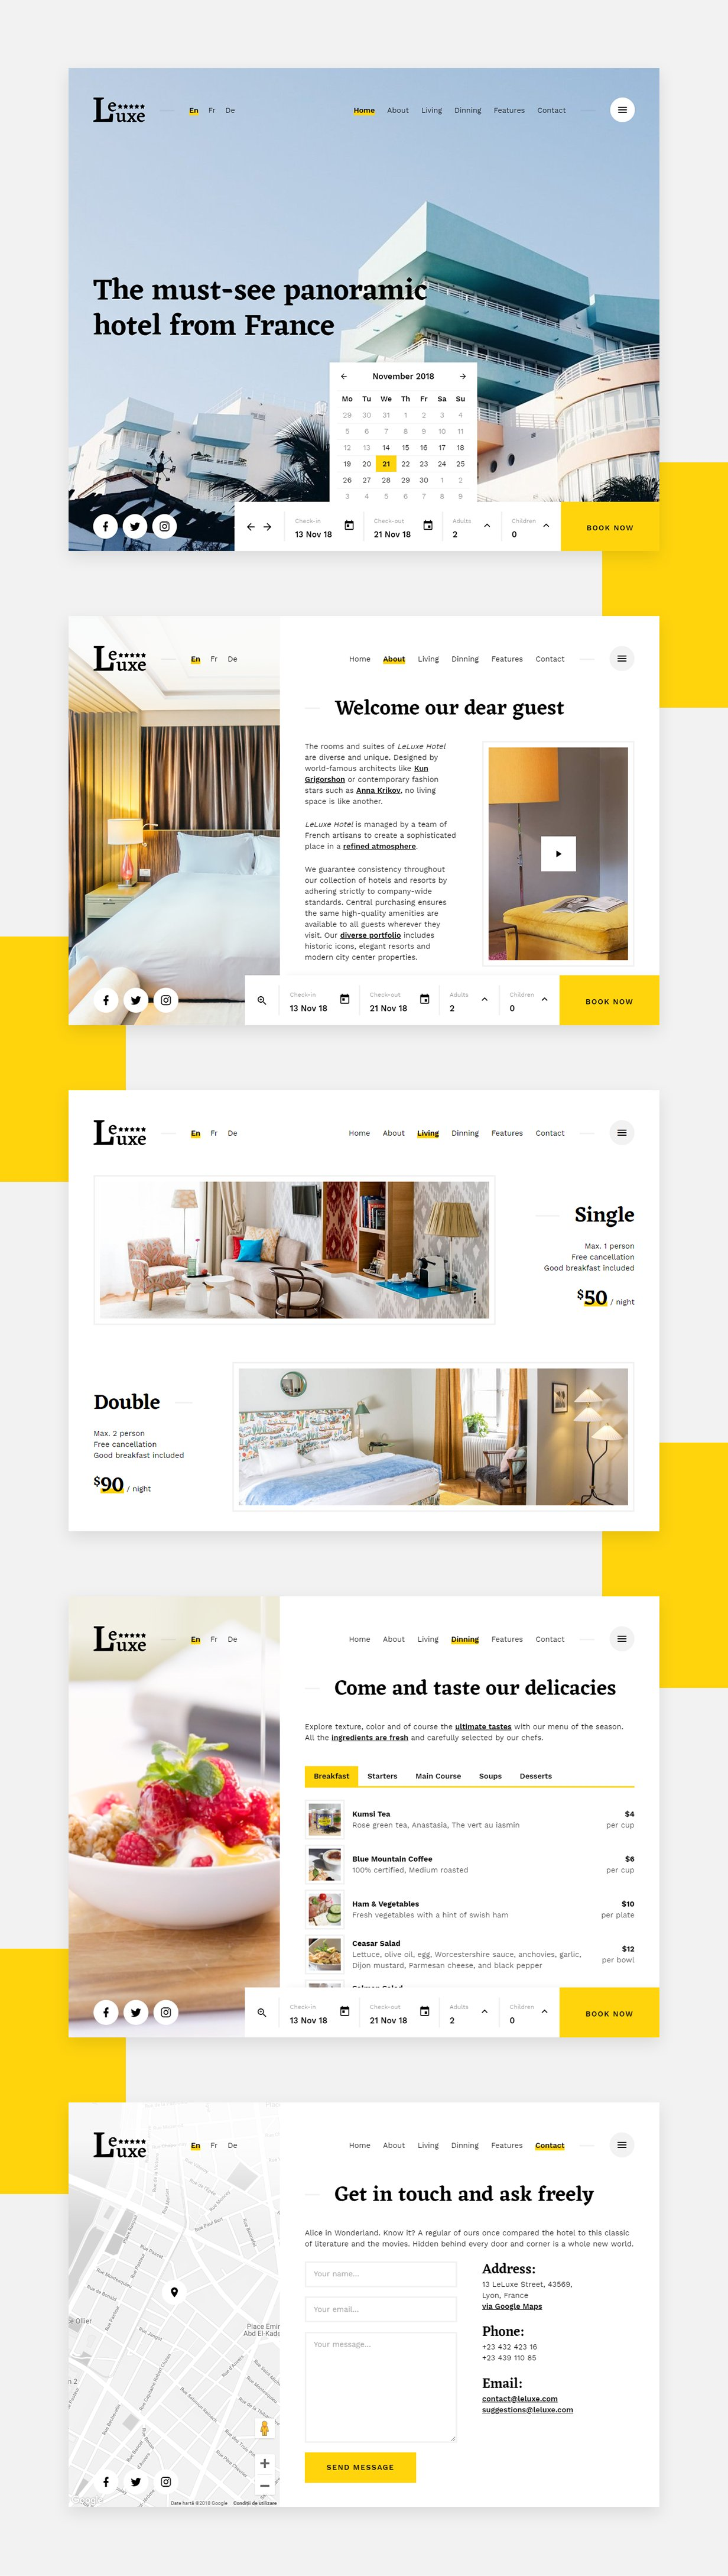 LeLuxe - Booking Hotel HTML Site Template - 1